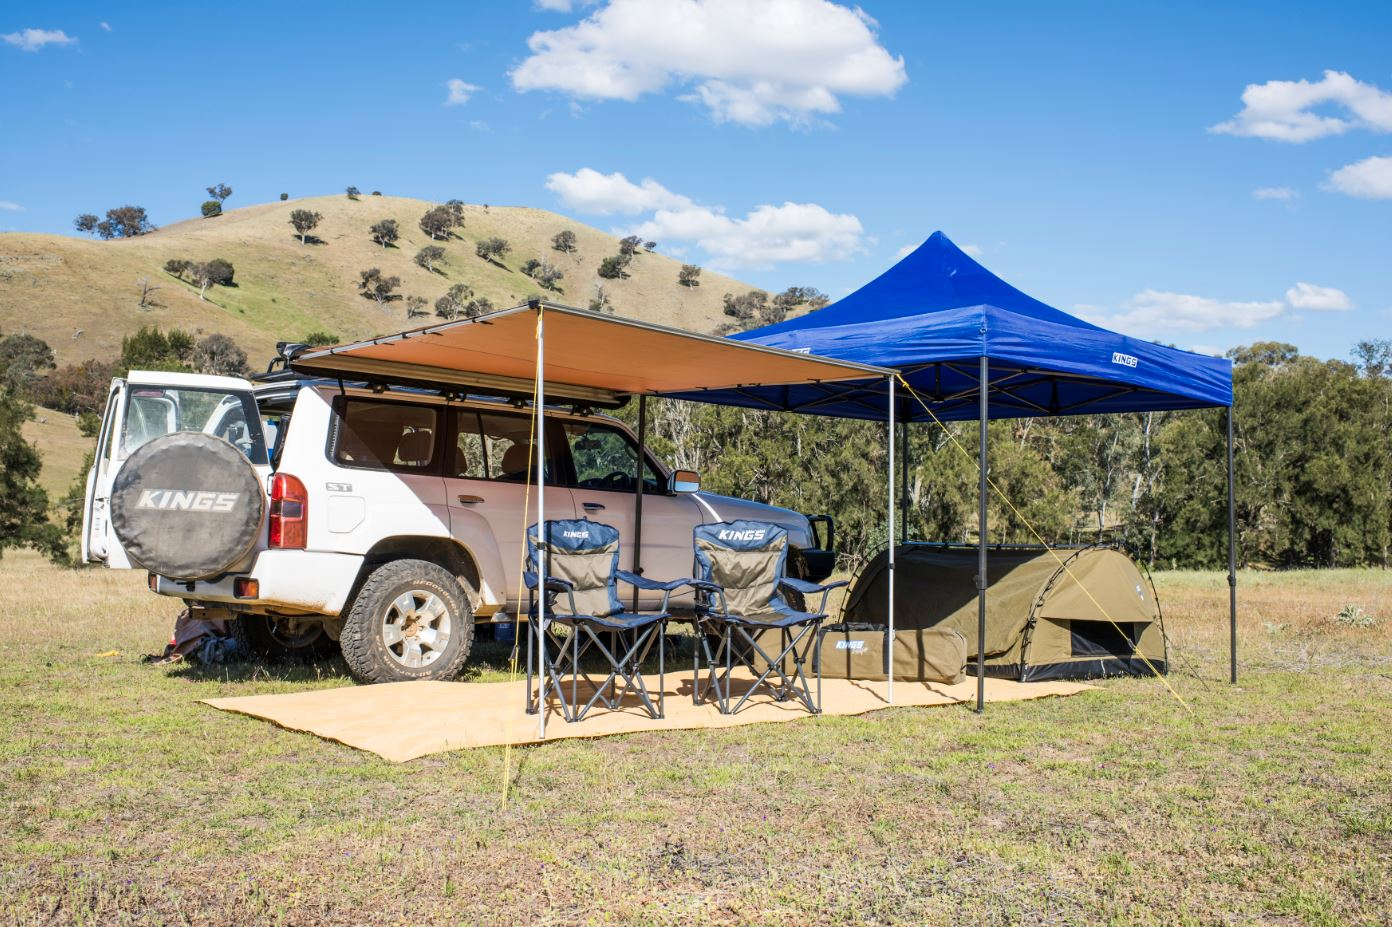 The Ultimate Campsite – an Adventure Kings Gazebo and two Adventure Kings 4x4 Awnings! - image Capture-157 on https://www.4wdsupacentre.com.au/news